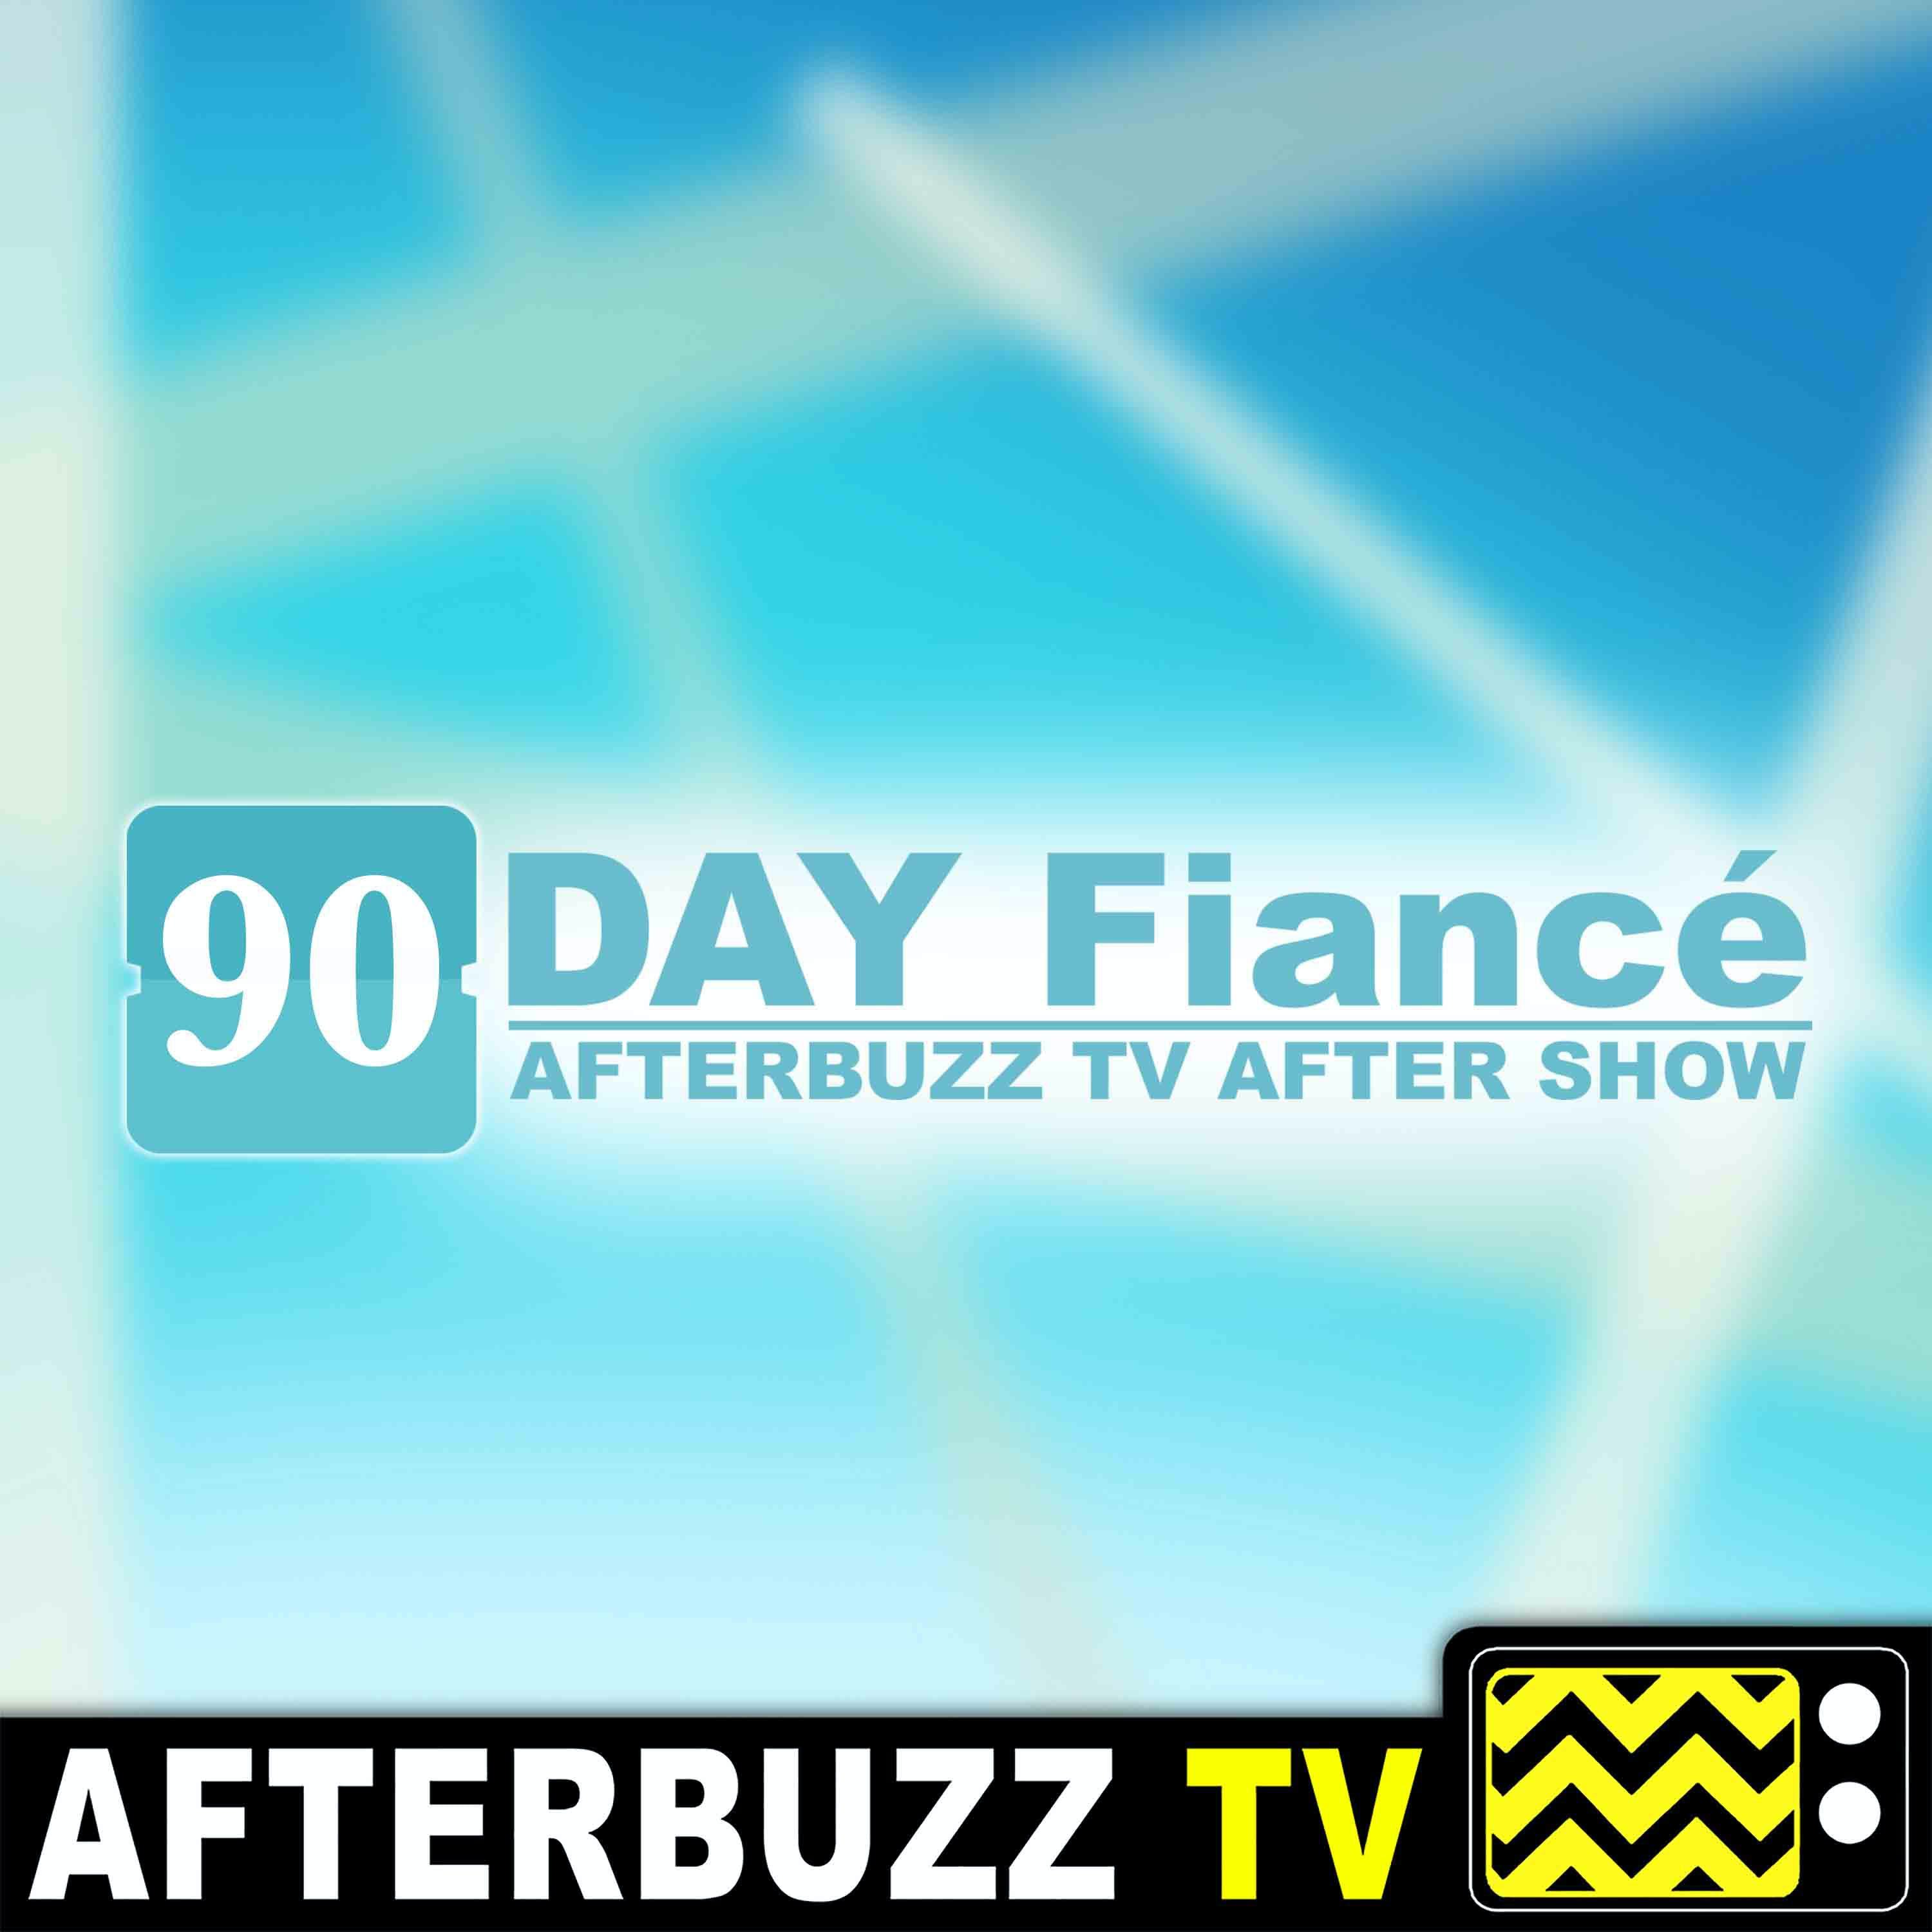 90 Day Fiancé: The Other Way S2 E1 - E3 Recap & After Show: 90 Day Wanderlust! The American's are faced with challenges as they head to their spouse's country's!